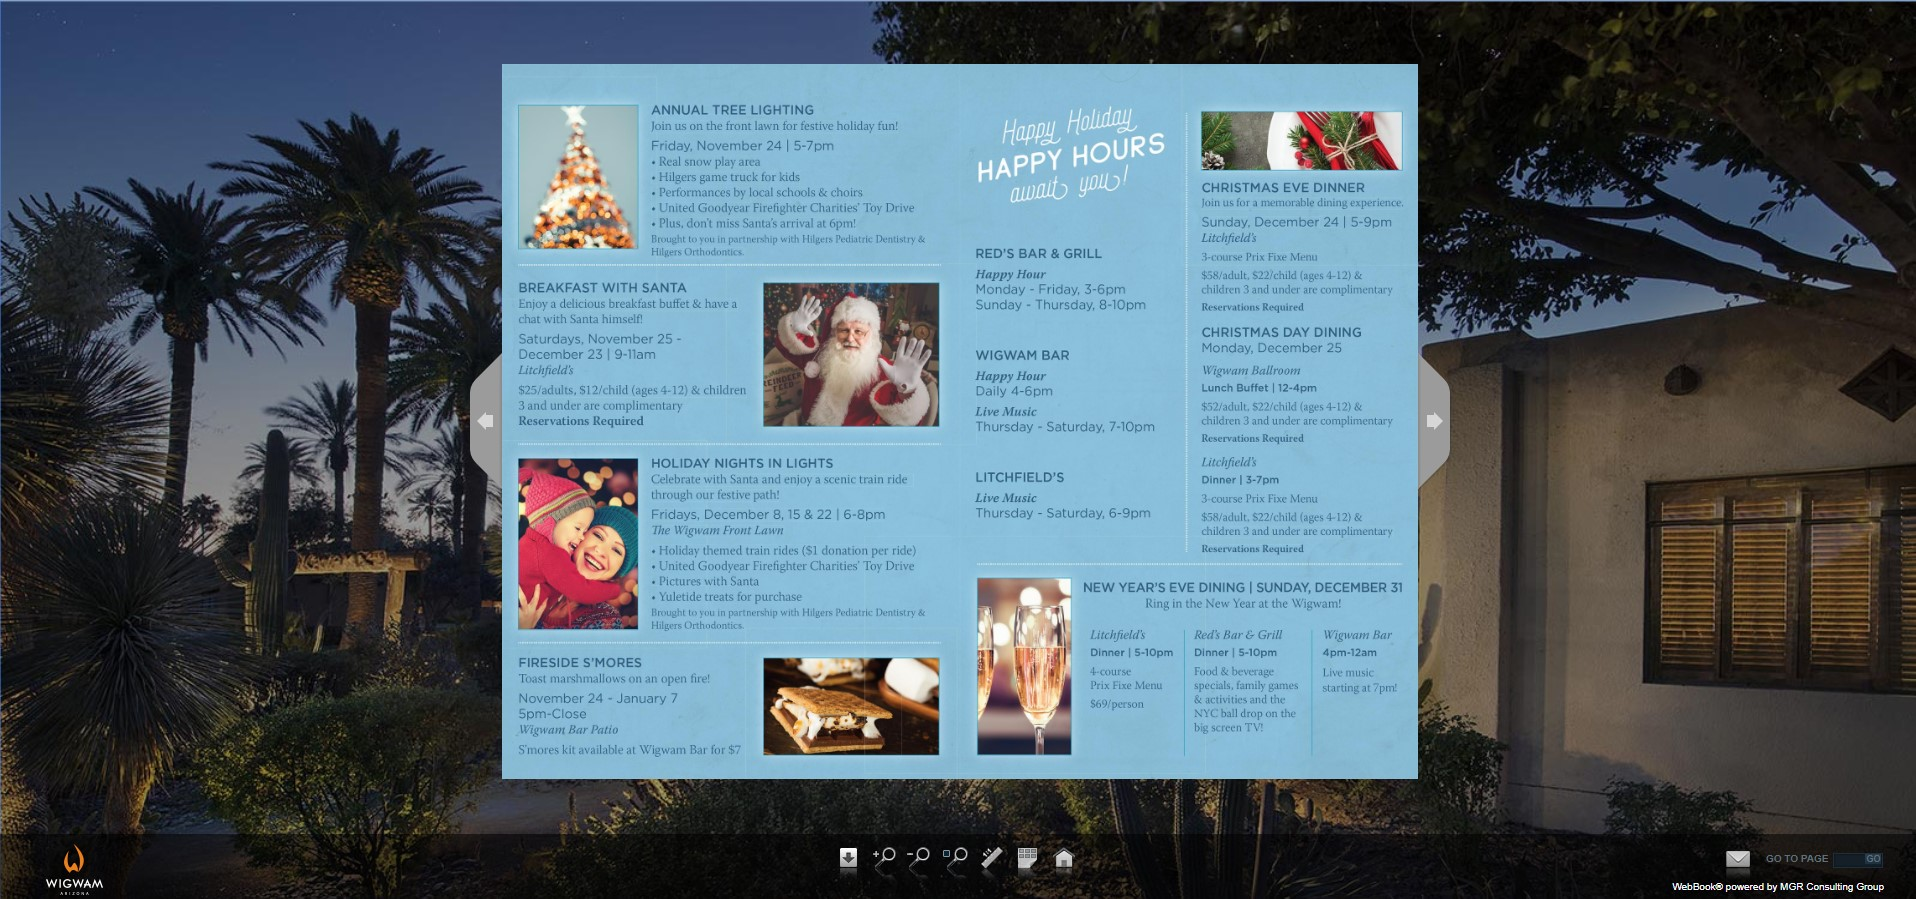 Wigwam Holiday Brochure